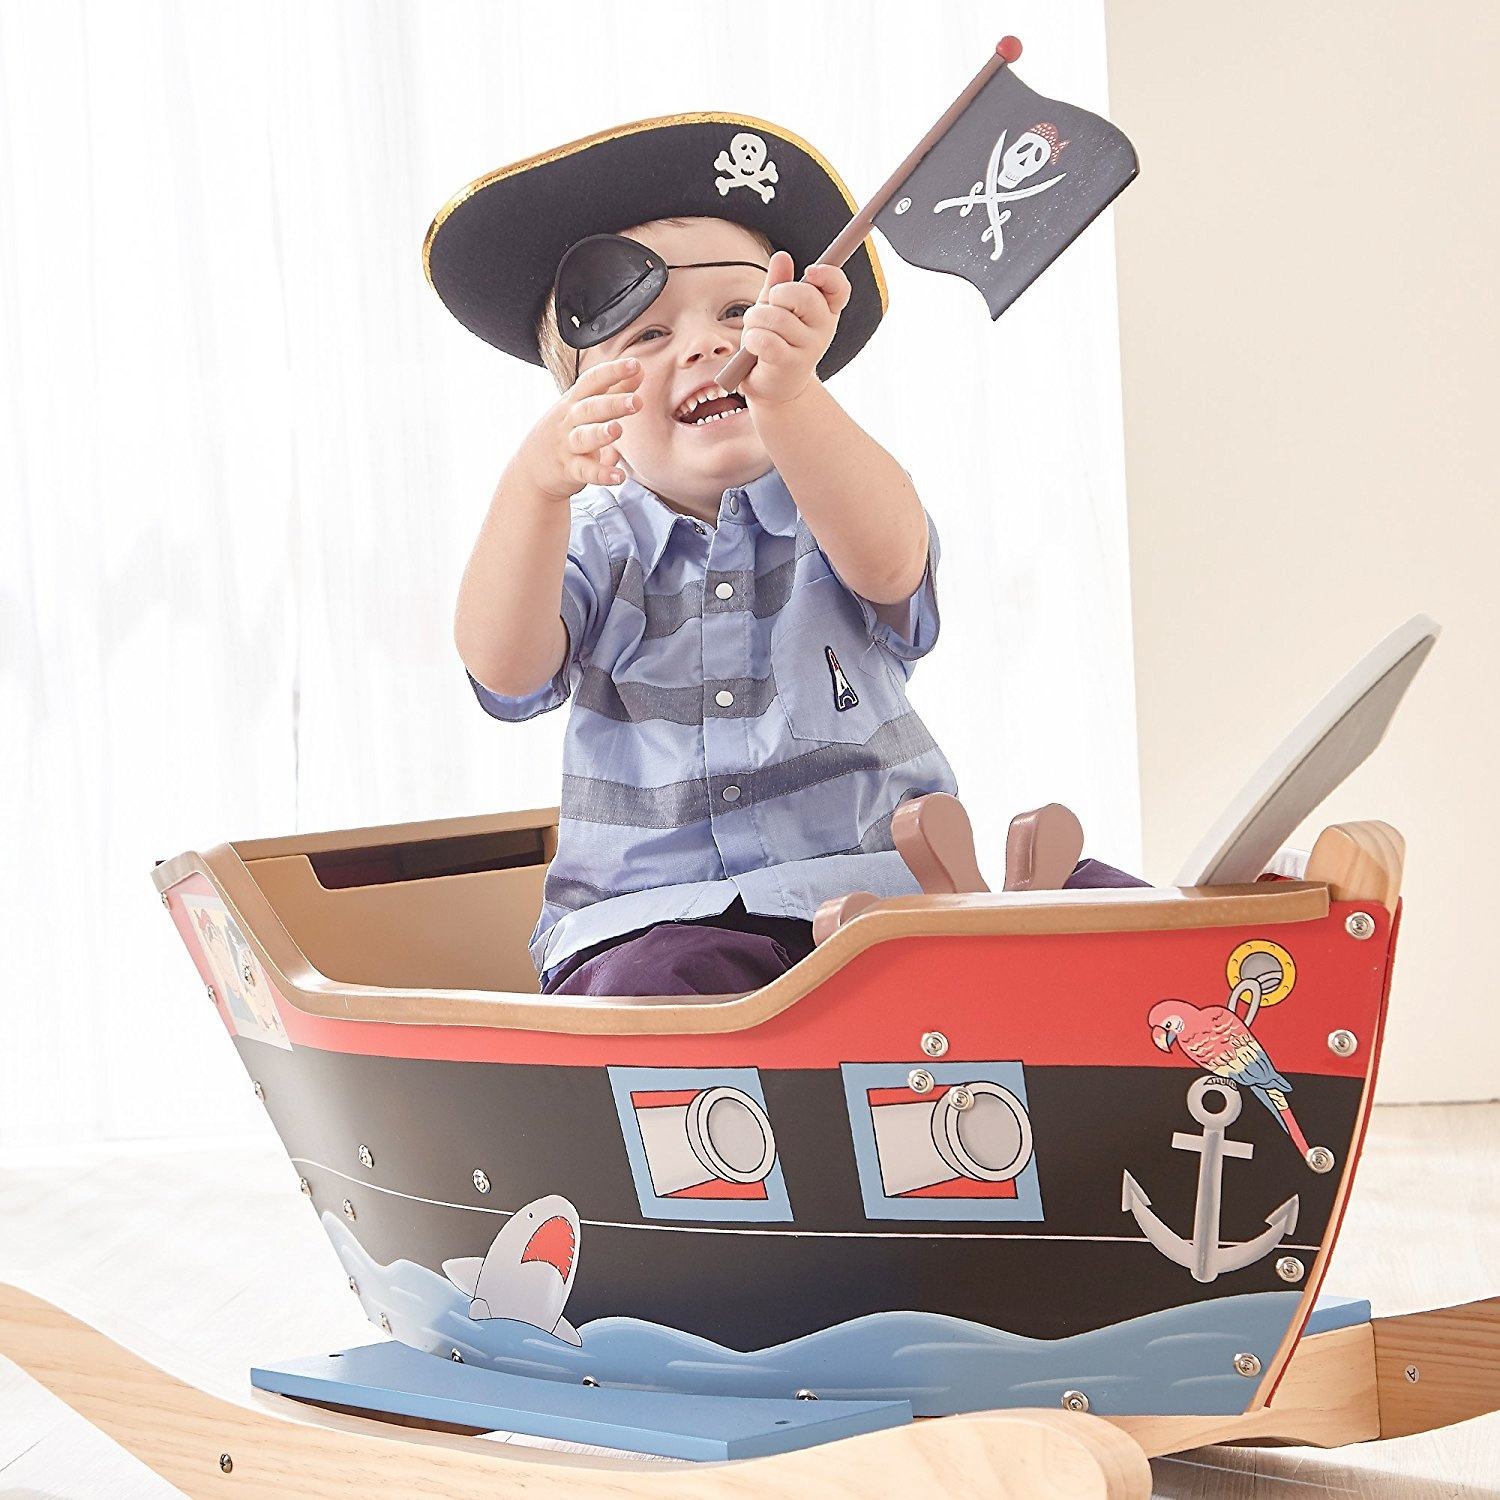 navio-pirata-de-balanco-pirate-ship-kids-ride-on-toy-04